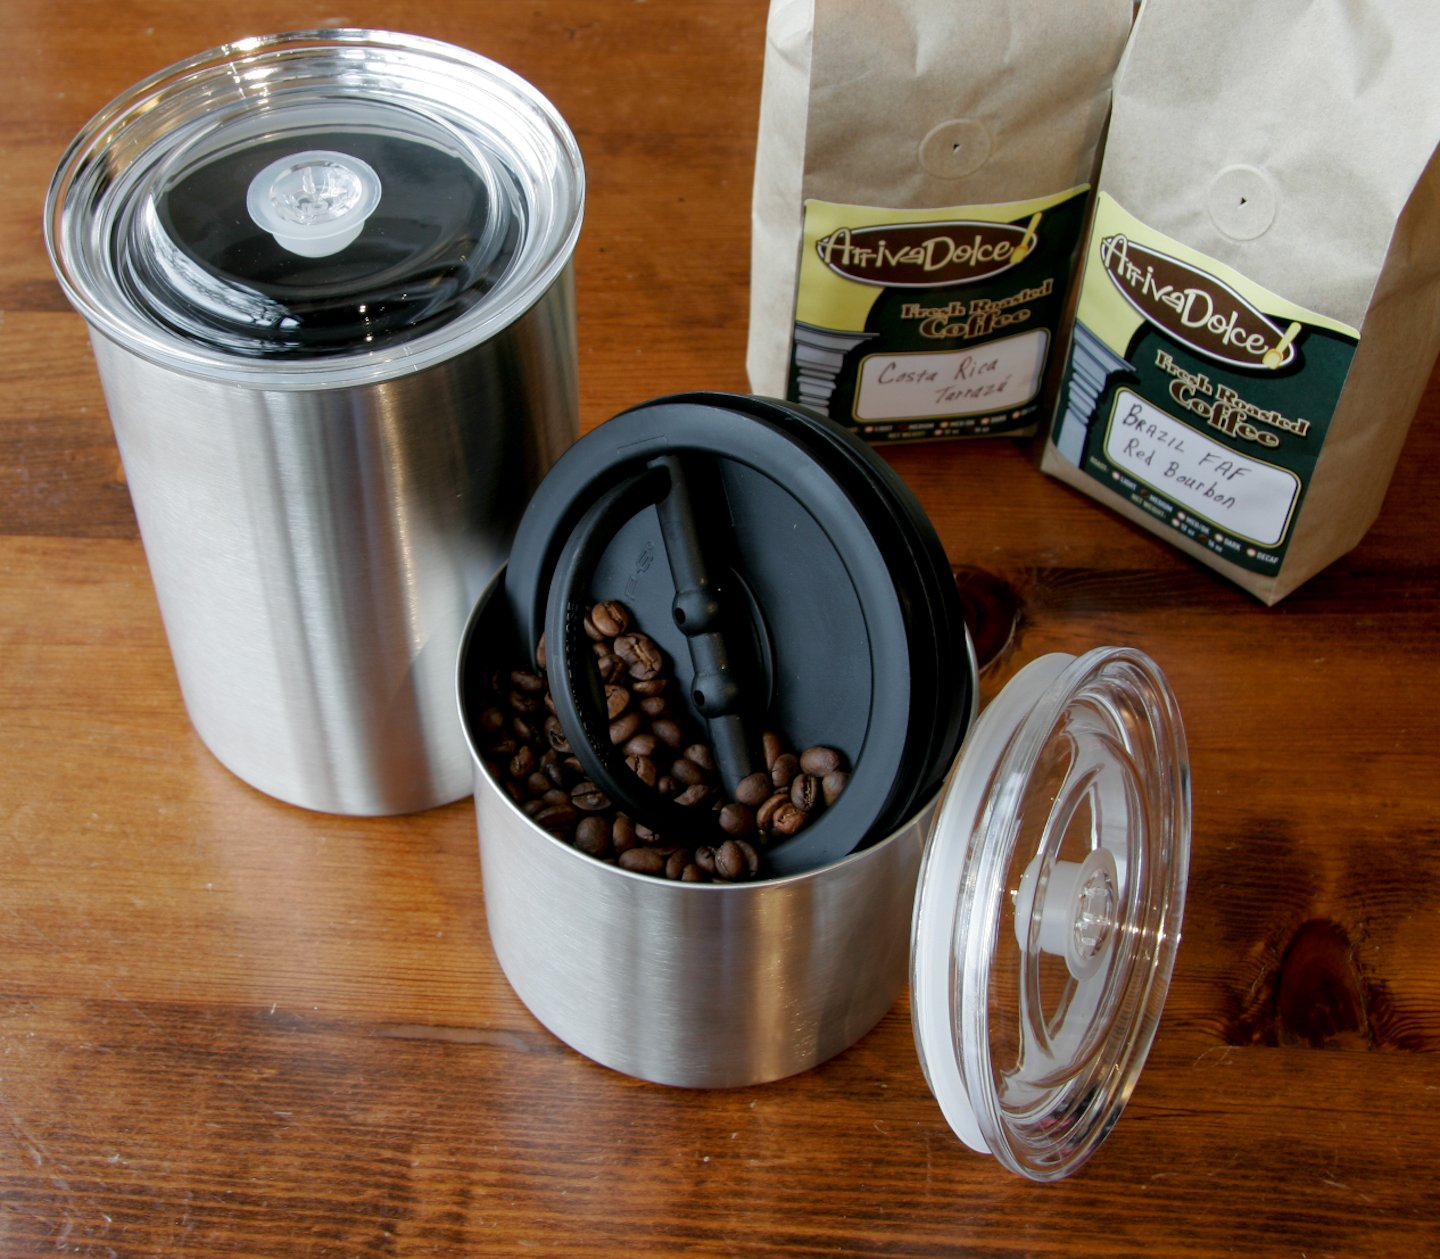 Planetary Design Airscape Coffee Storage Canister (1 lb Dry Beans) - Patented Airtight Lid Pushes Air Out to Preserve Food Freshness - Stainless Steel Food Container - Brushed Steel by Planetary Design (Image #6)